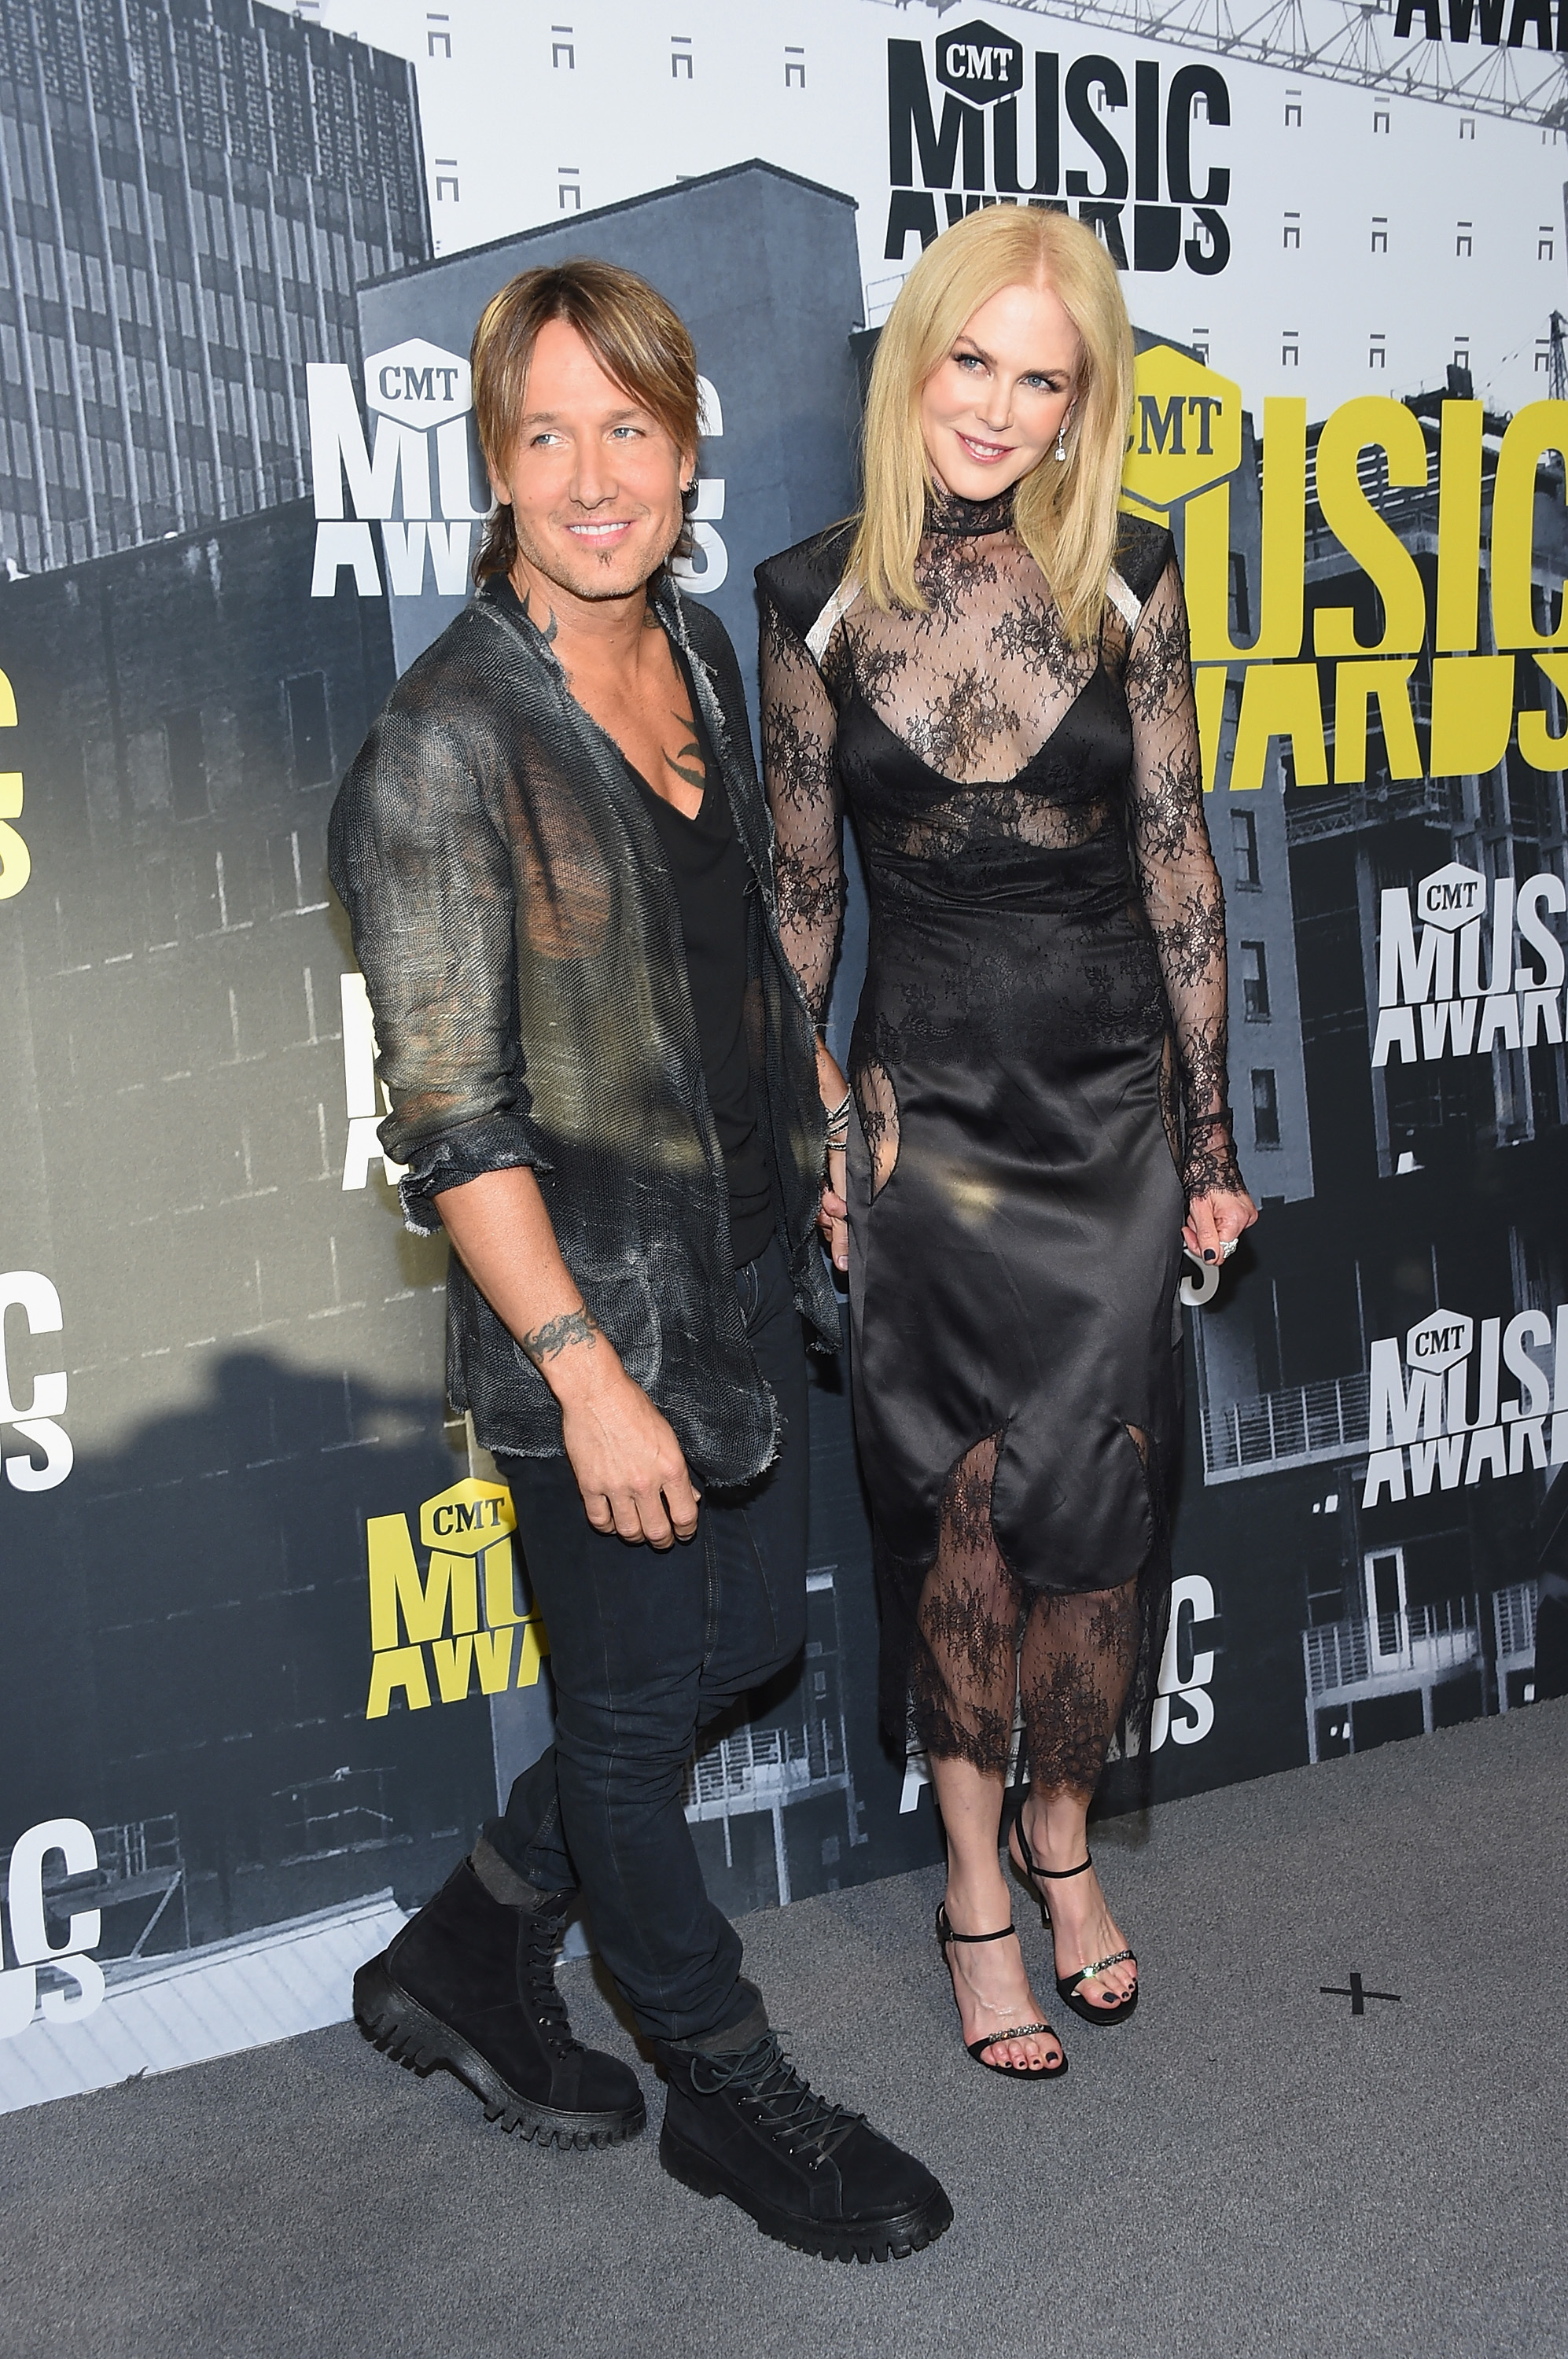 Keith Urban and Nicole Kidman attend the 2017 CMT Music Awards at the Music City Center  in Nashville, Tennessee, on June 7, 2017.